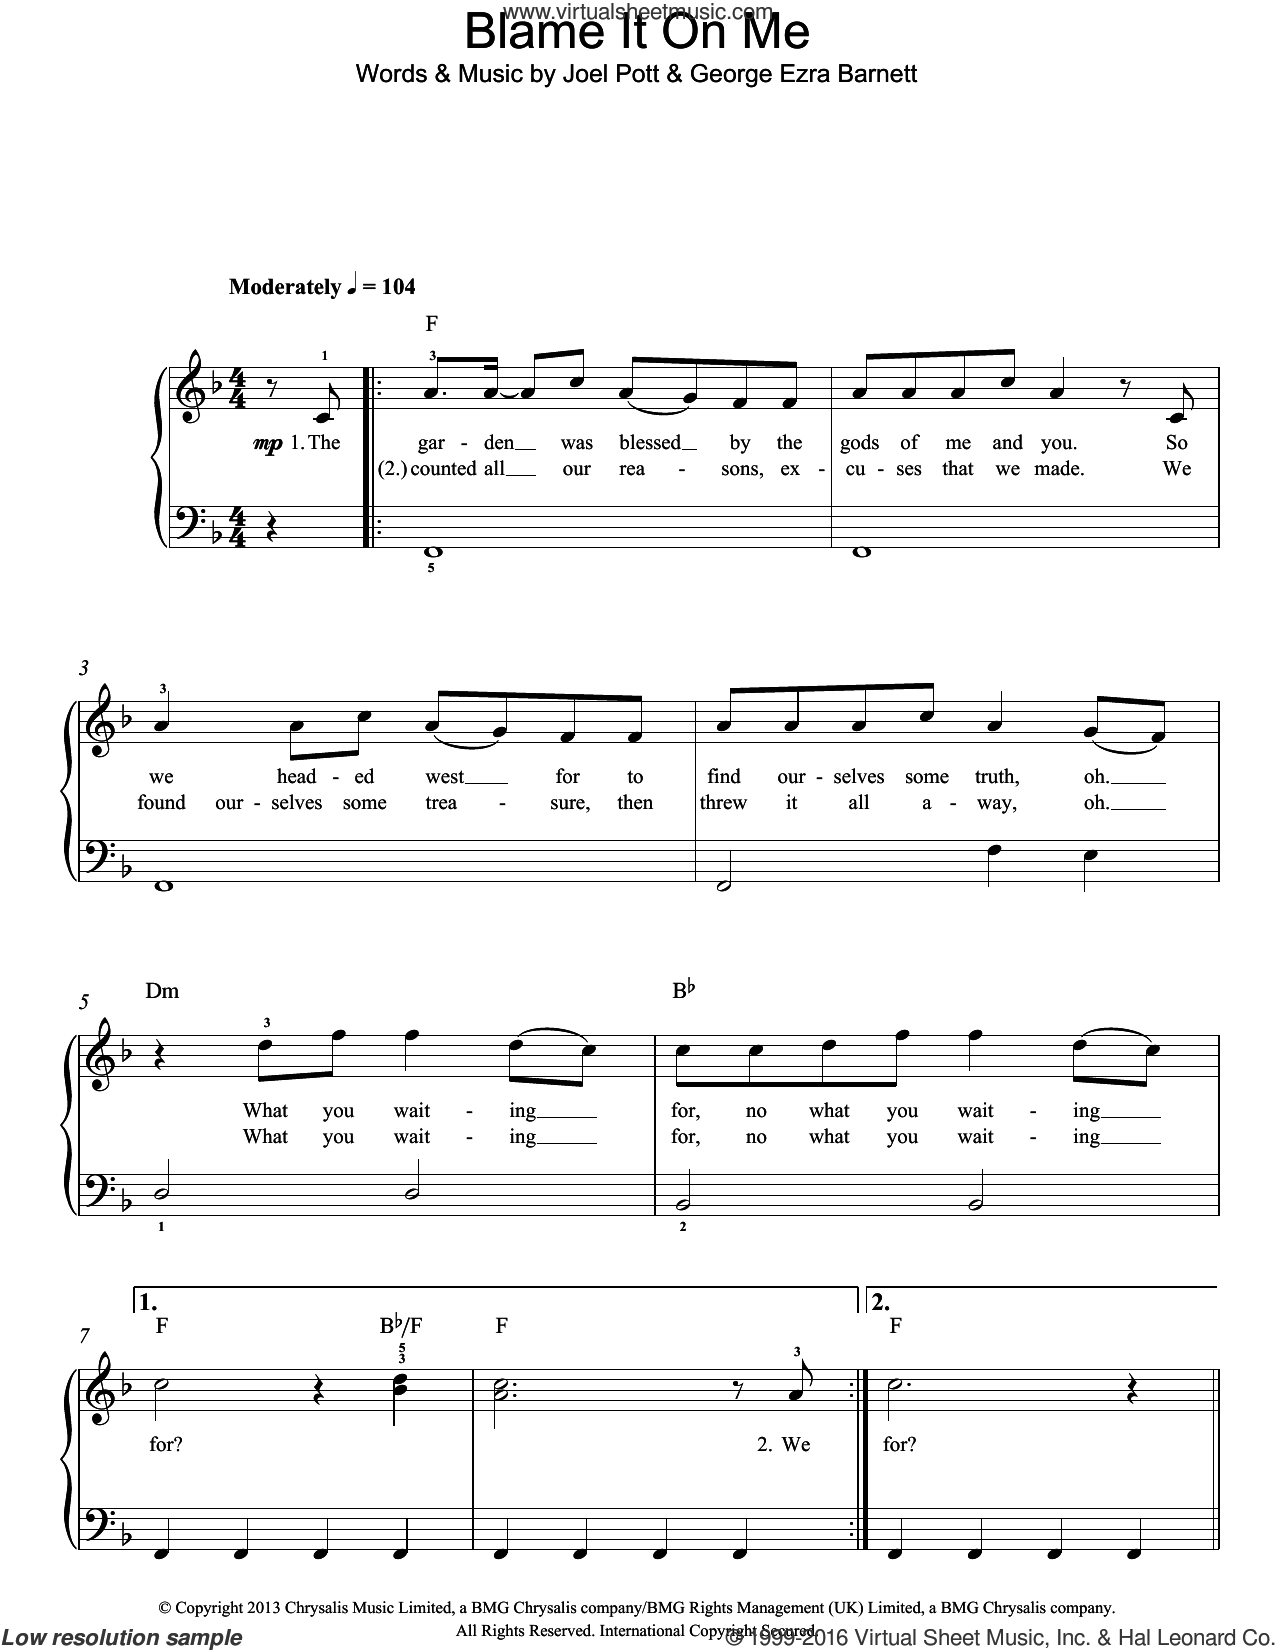 Blame It On Me sheet music for piano solo by George Ezra Barnett and Joel Pott. Score Image Preview.